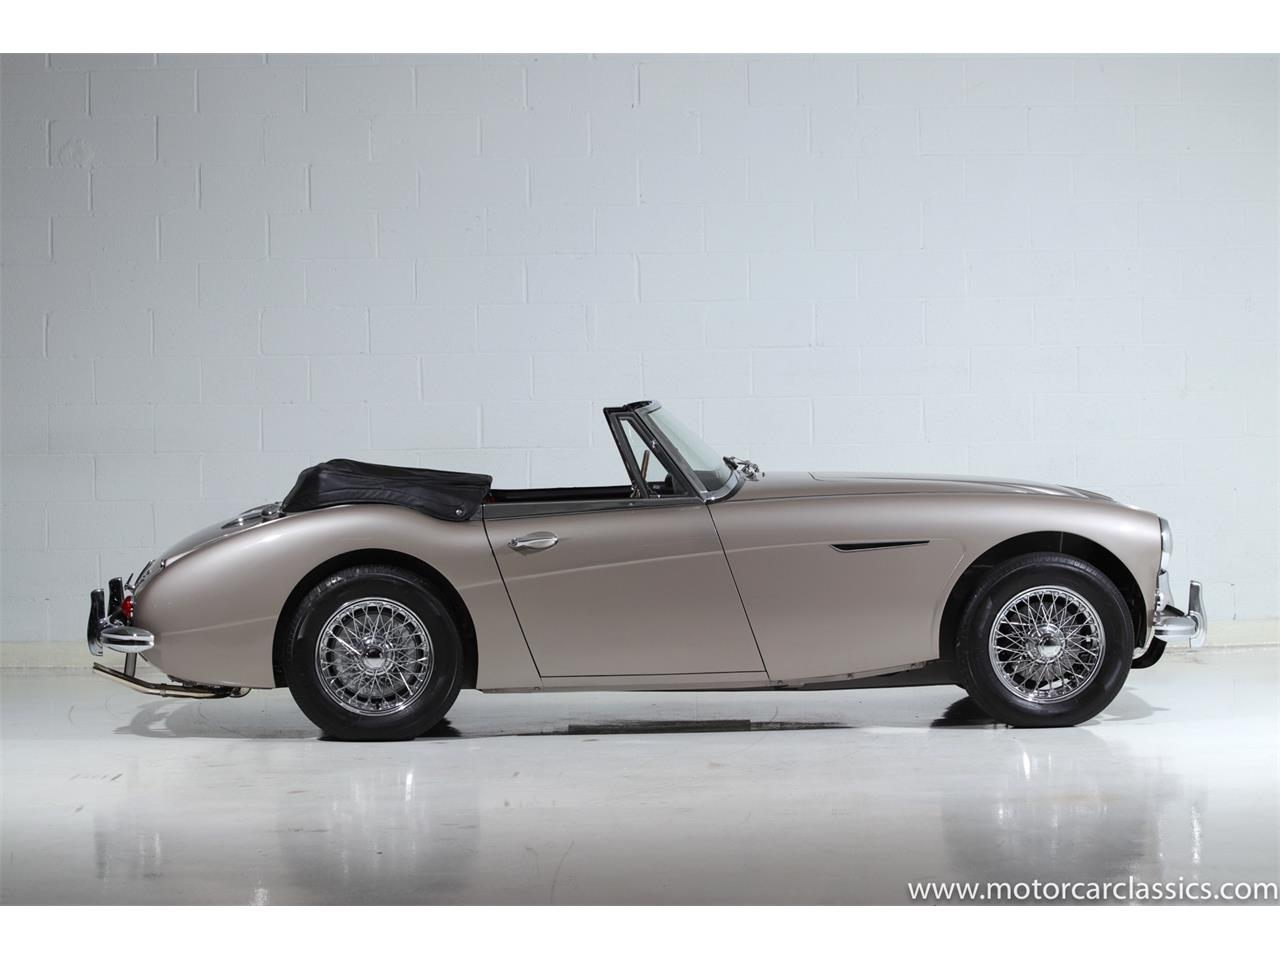 1964 Austin-Healey 3000 for sale in Farmingdale, NY – photo 11